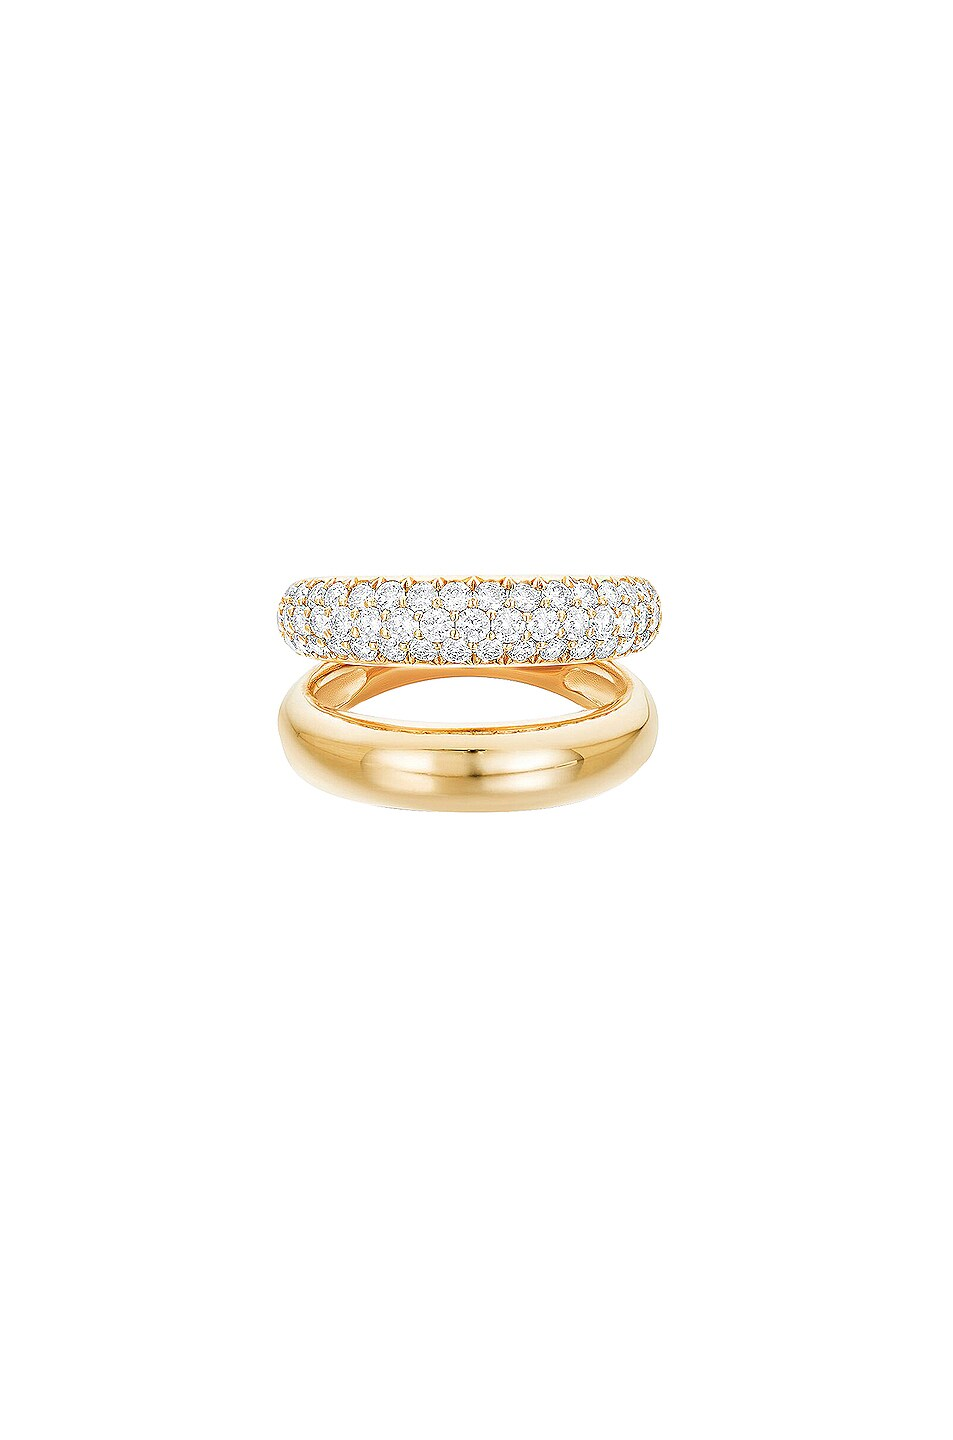 Image 1 of Carbon & Hyde Gemini Ring in 14K Yellow Gold